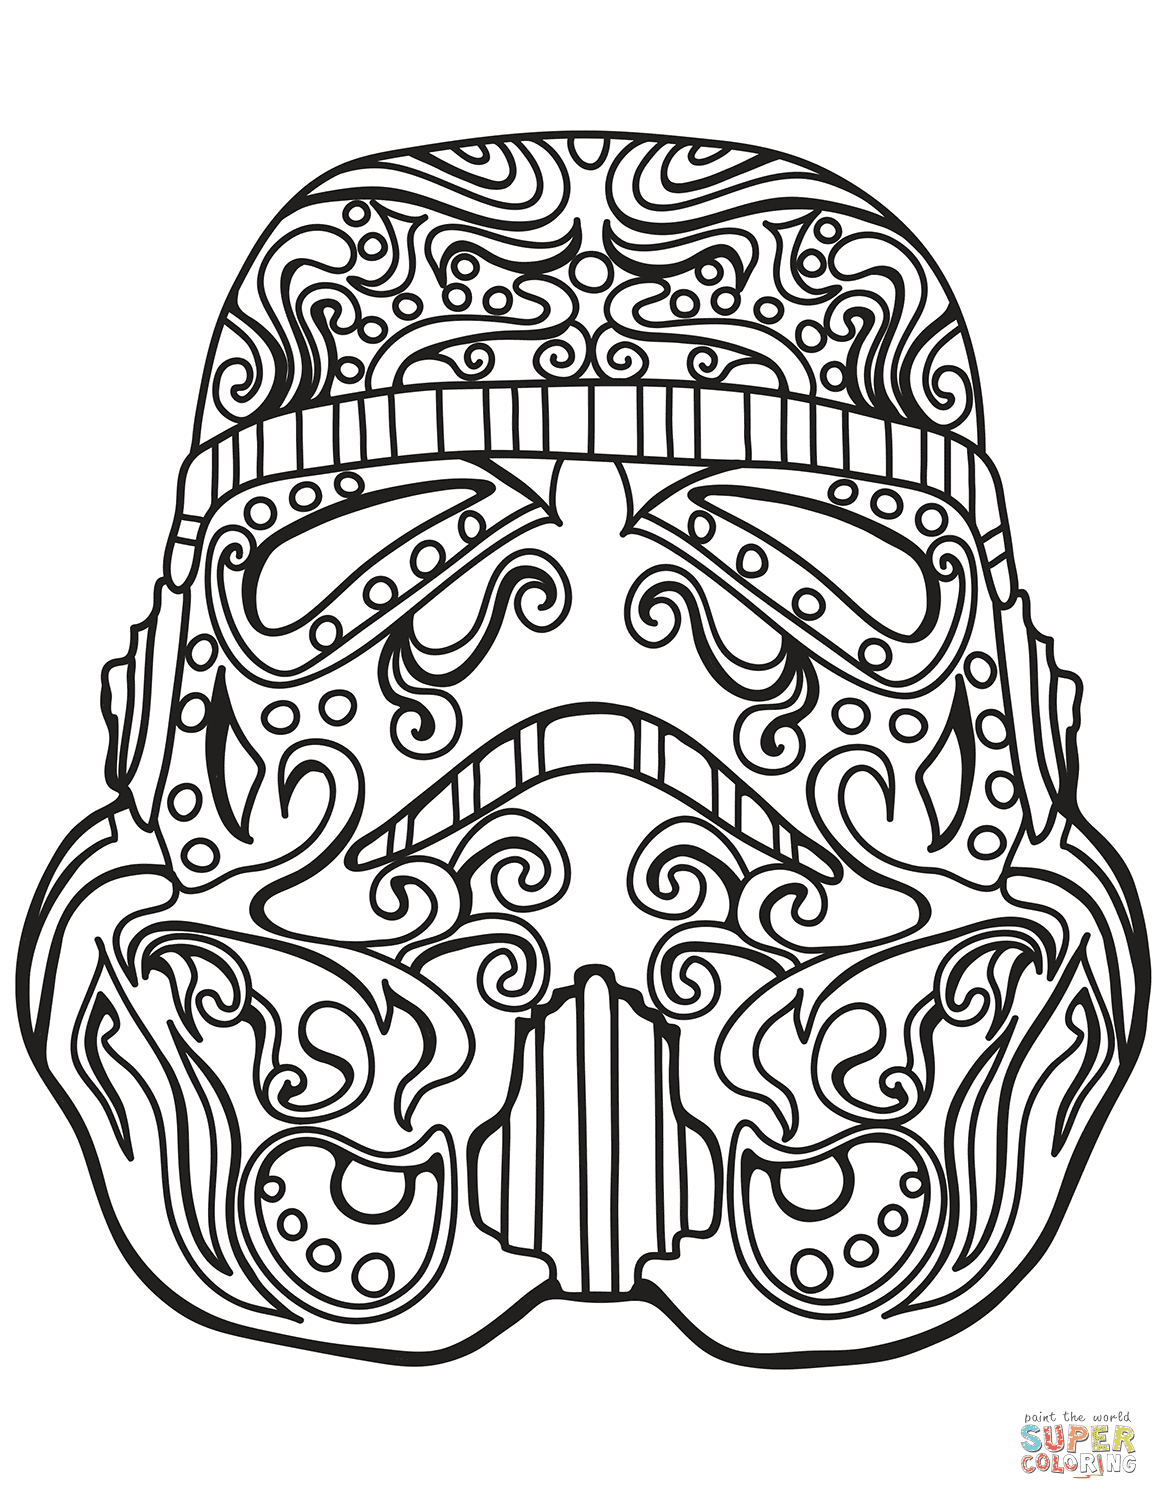 Star Wars Stormtrooper Sugar Skull coloring page | Free ...